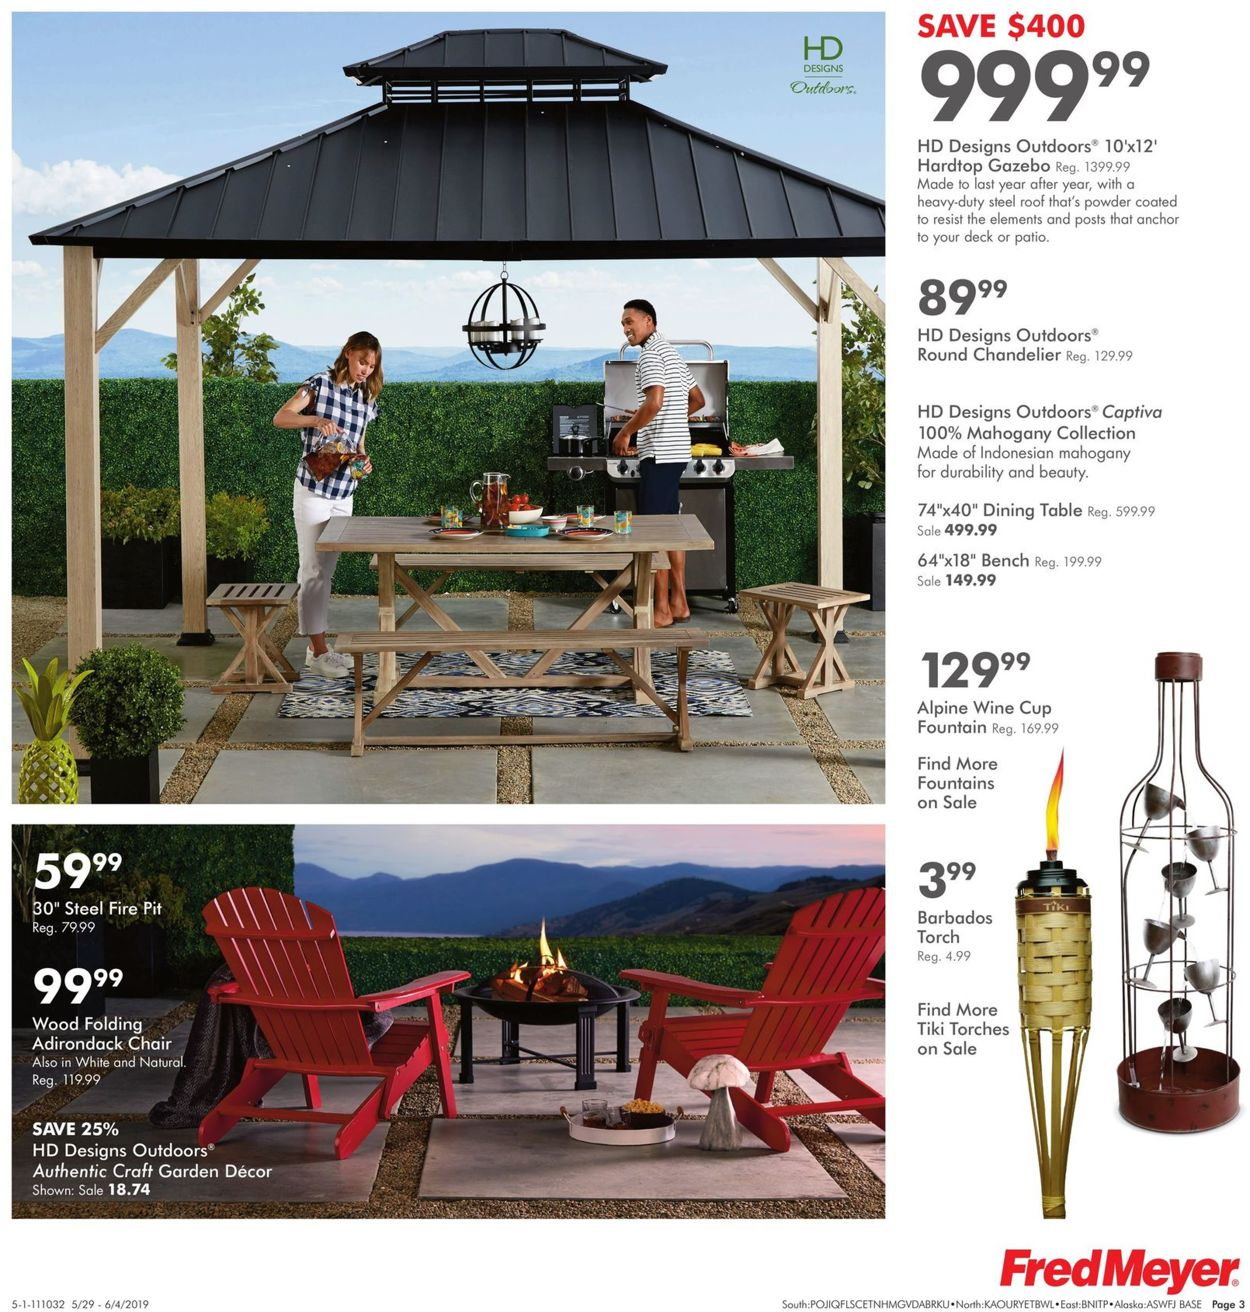 Fred Meyer Current weekly ad 05/29 - 06/04/2019 [3] - weekly